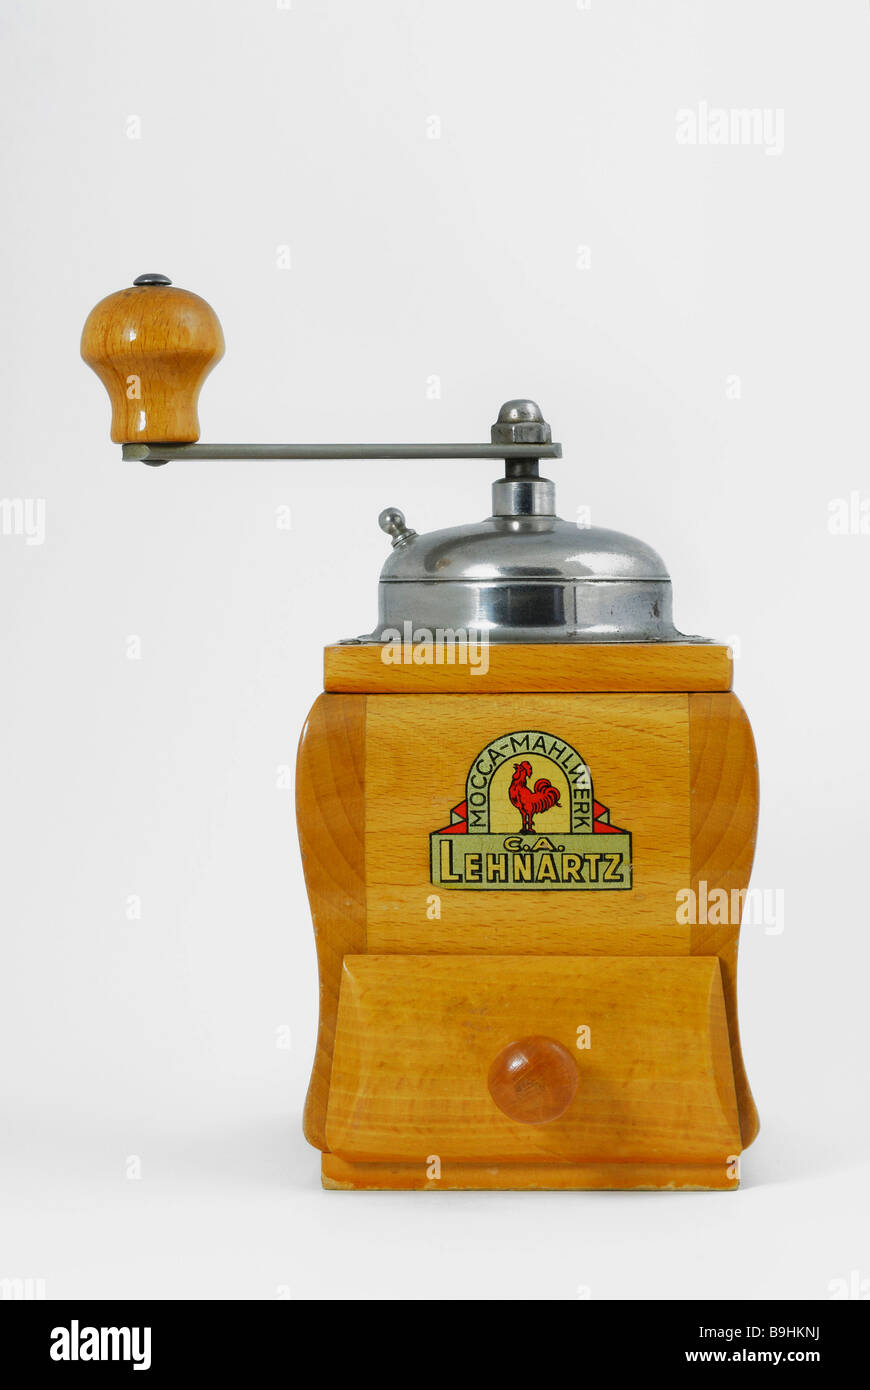 Wooden coffee mill, mocha grinder - Stock Image